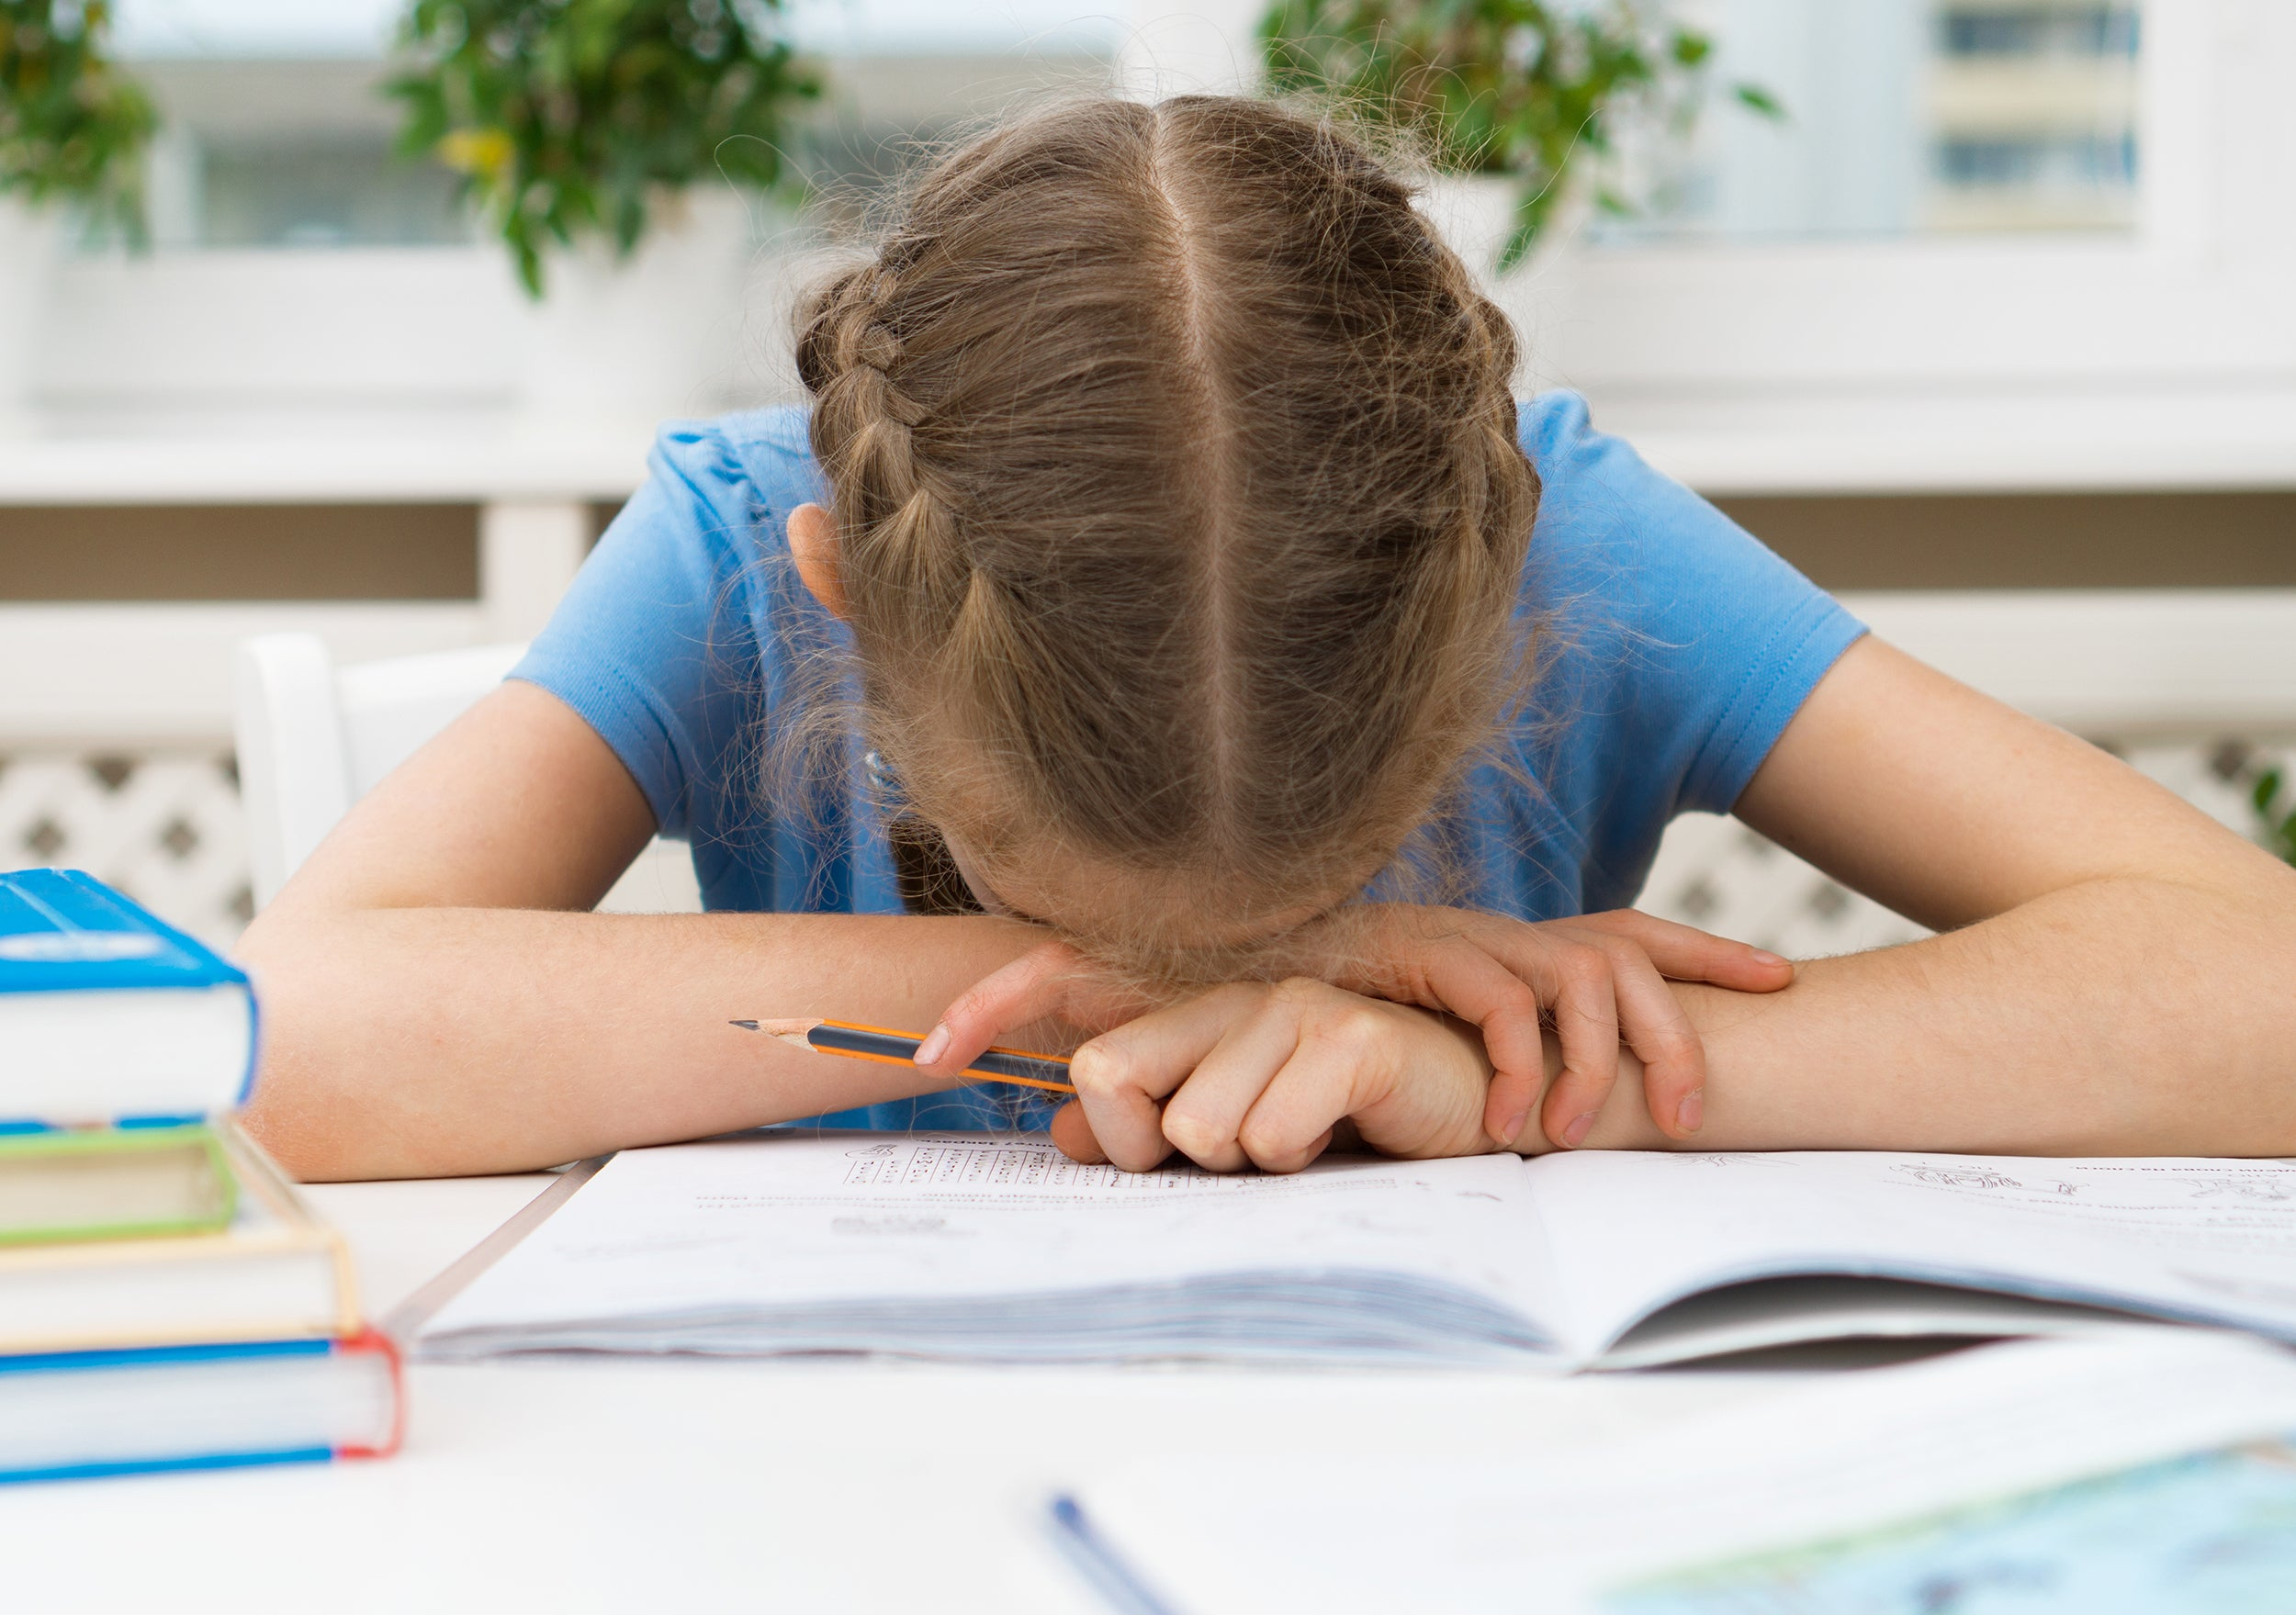 5 Signs of Stress in Children - having difficulty in school